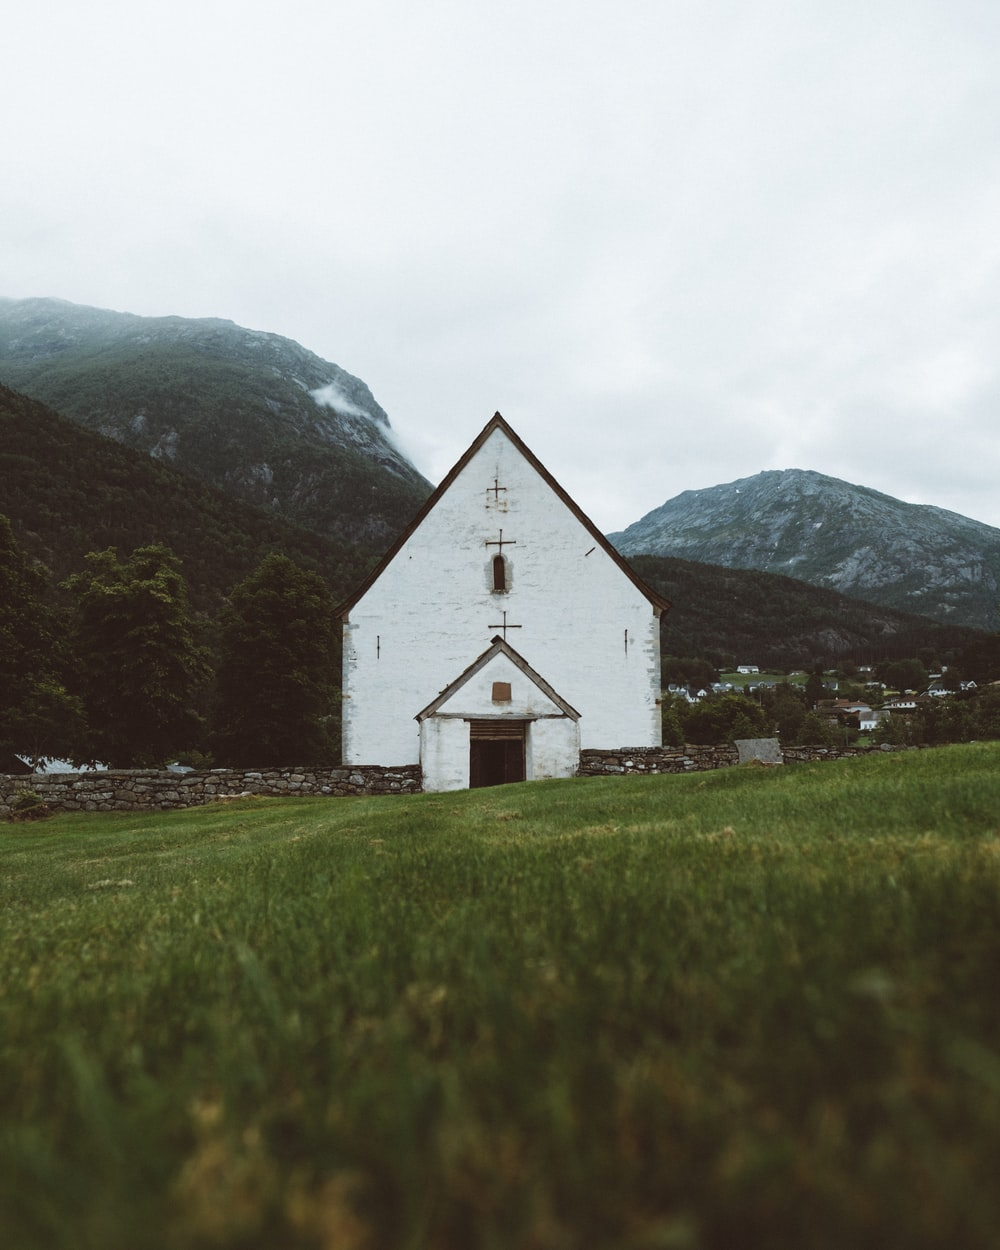 white concrete church near mountain peaks